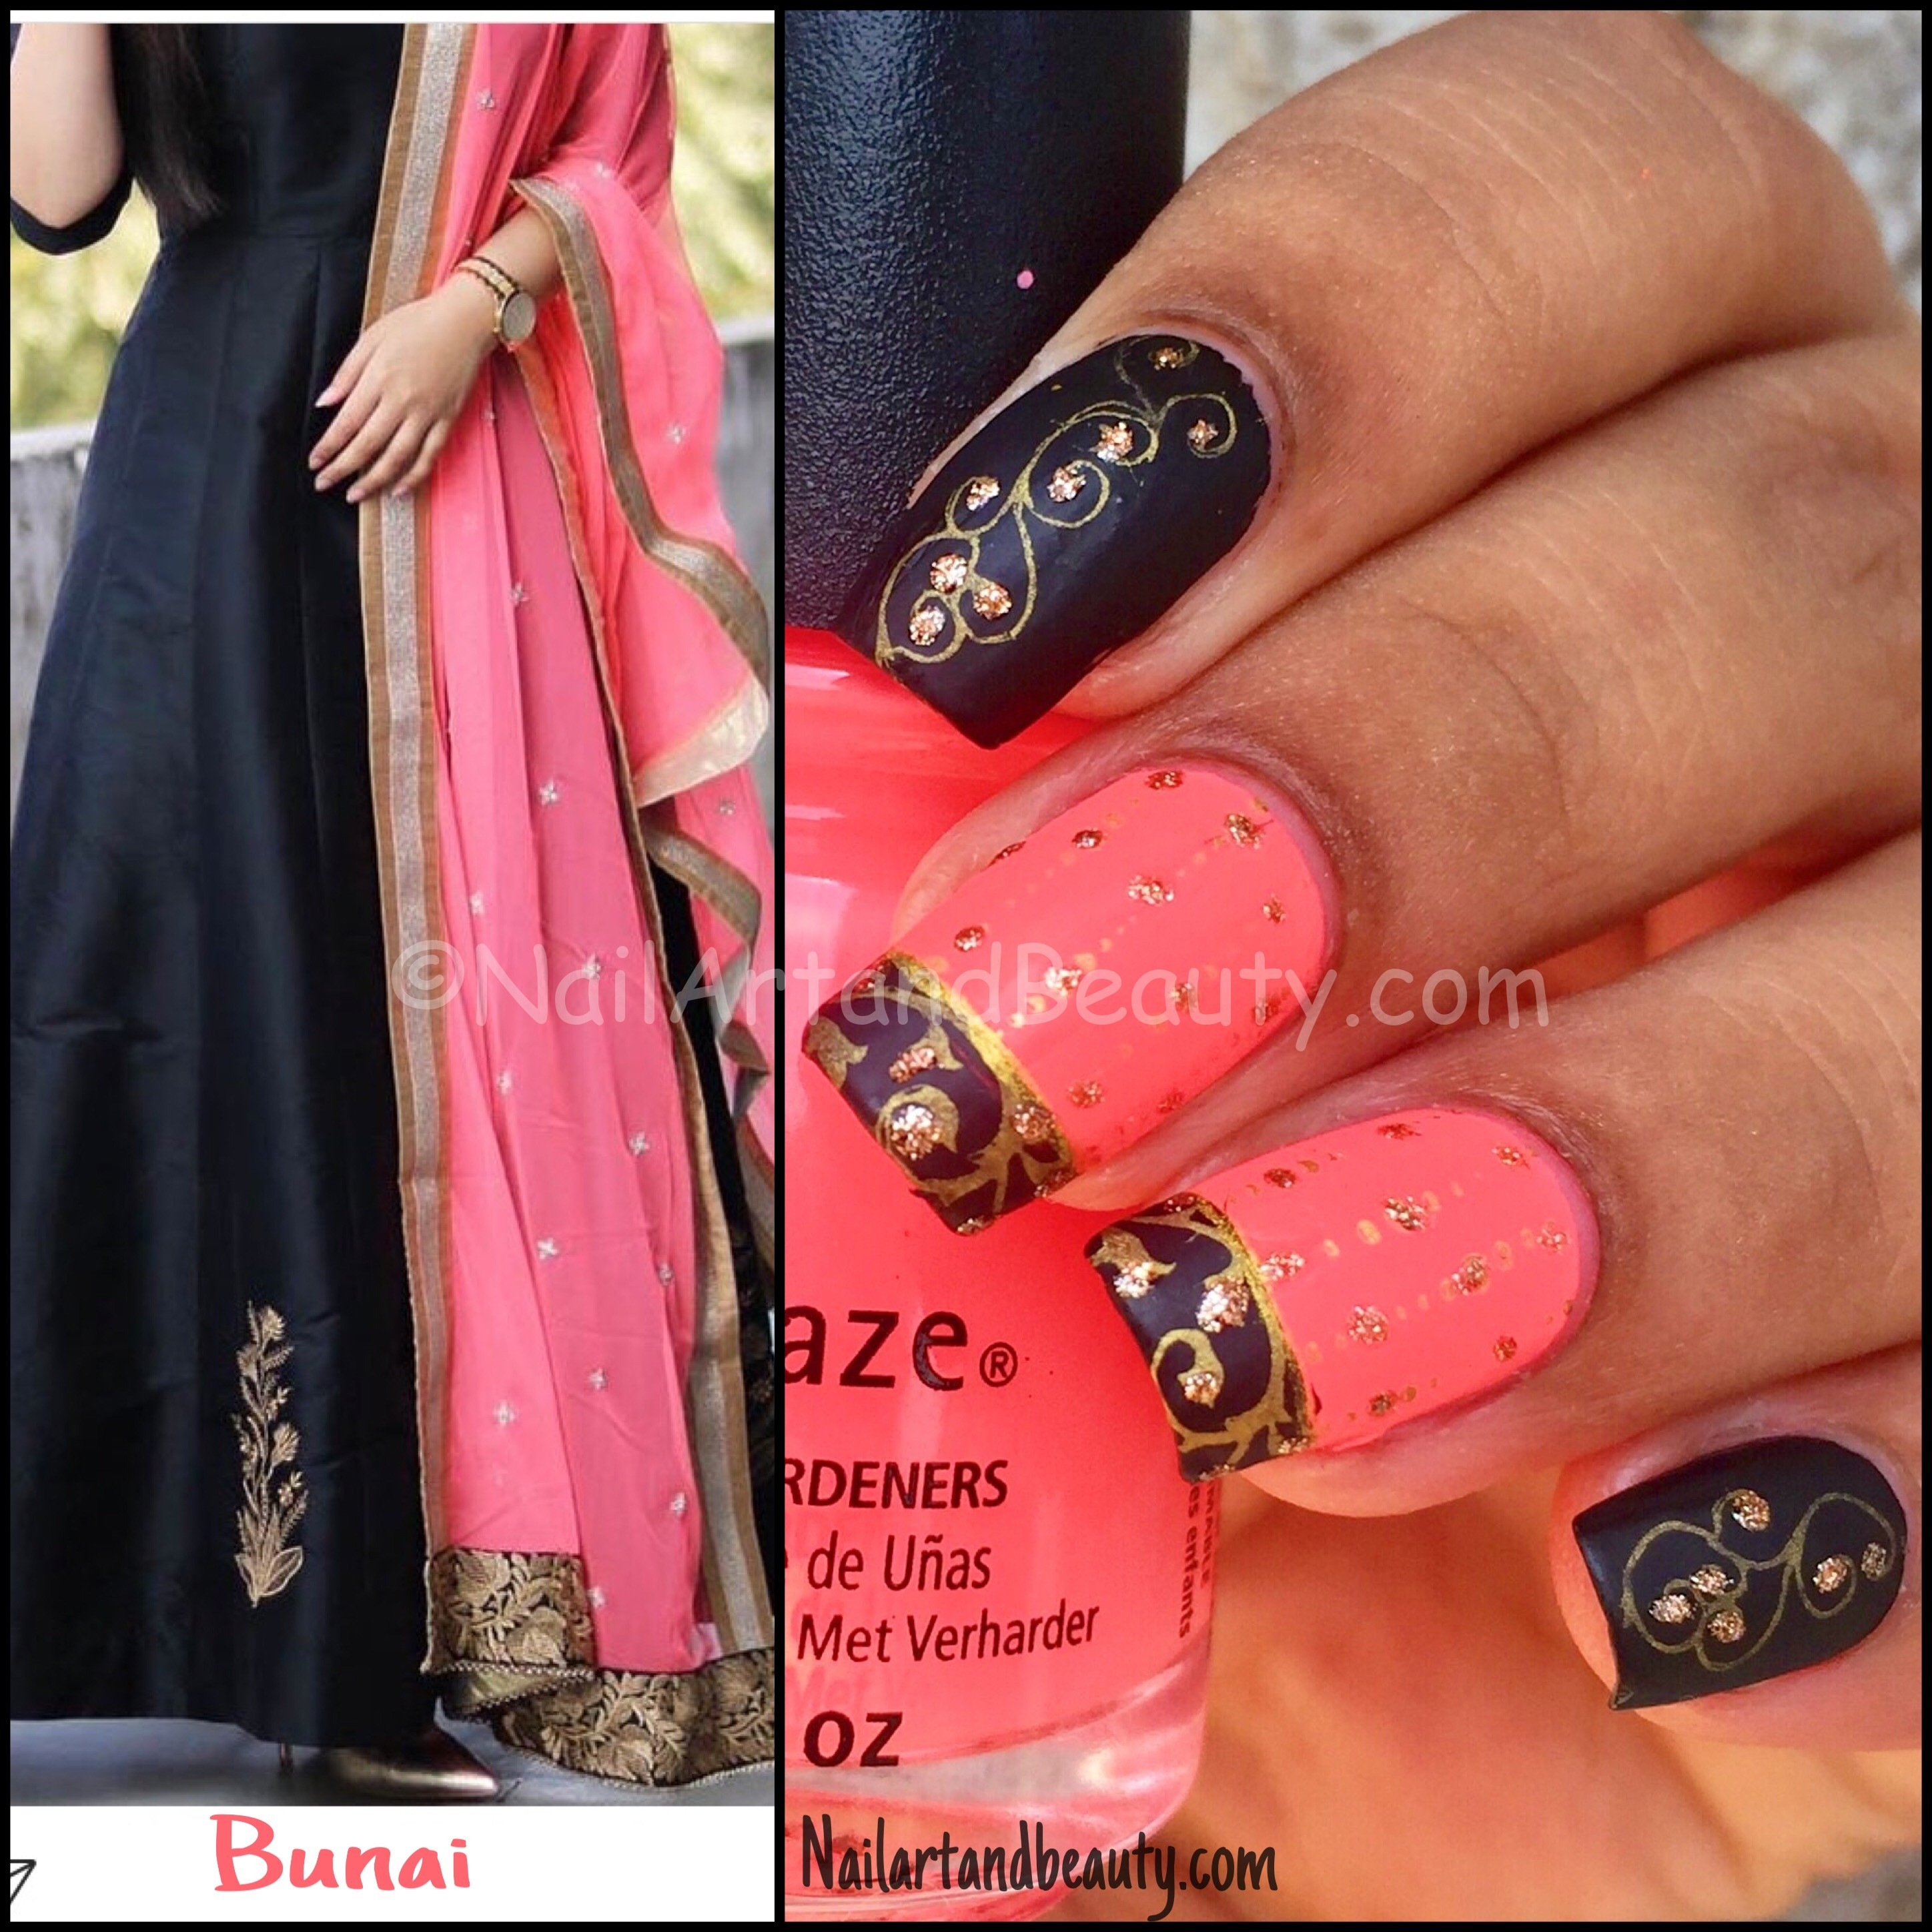 Bright Pink and Black Nails Inspired by Pari Choudhary Collage